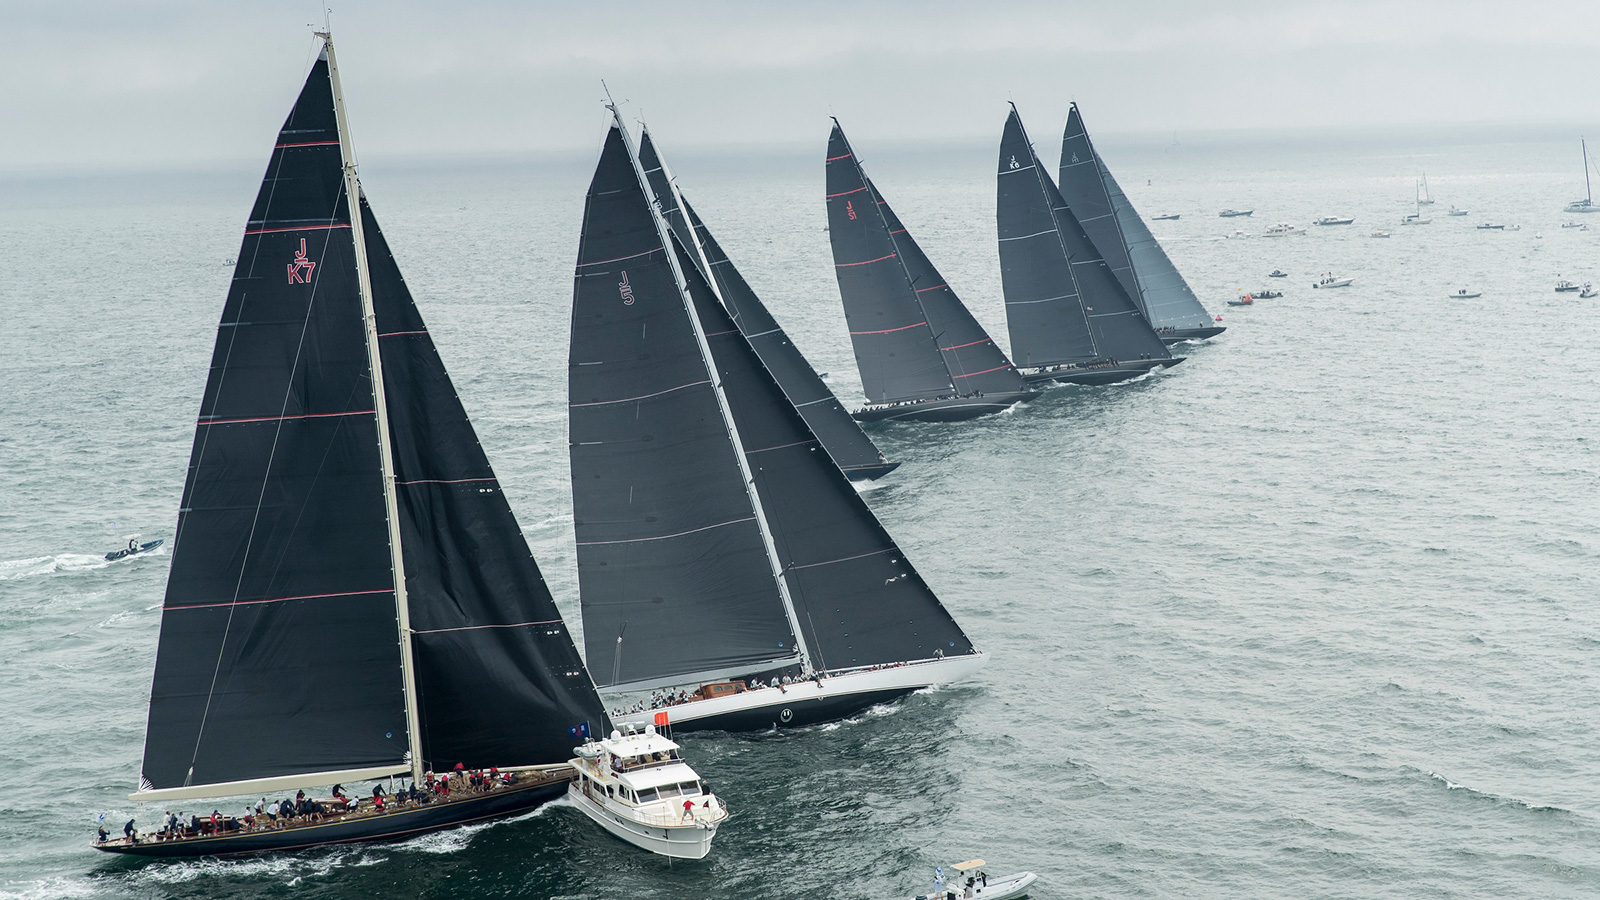 a-spectator-boat-collided-with-velshada-on-day-one-of-the-j-class-world-championships-credit-onne-van-der-wal